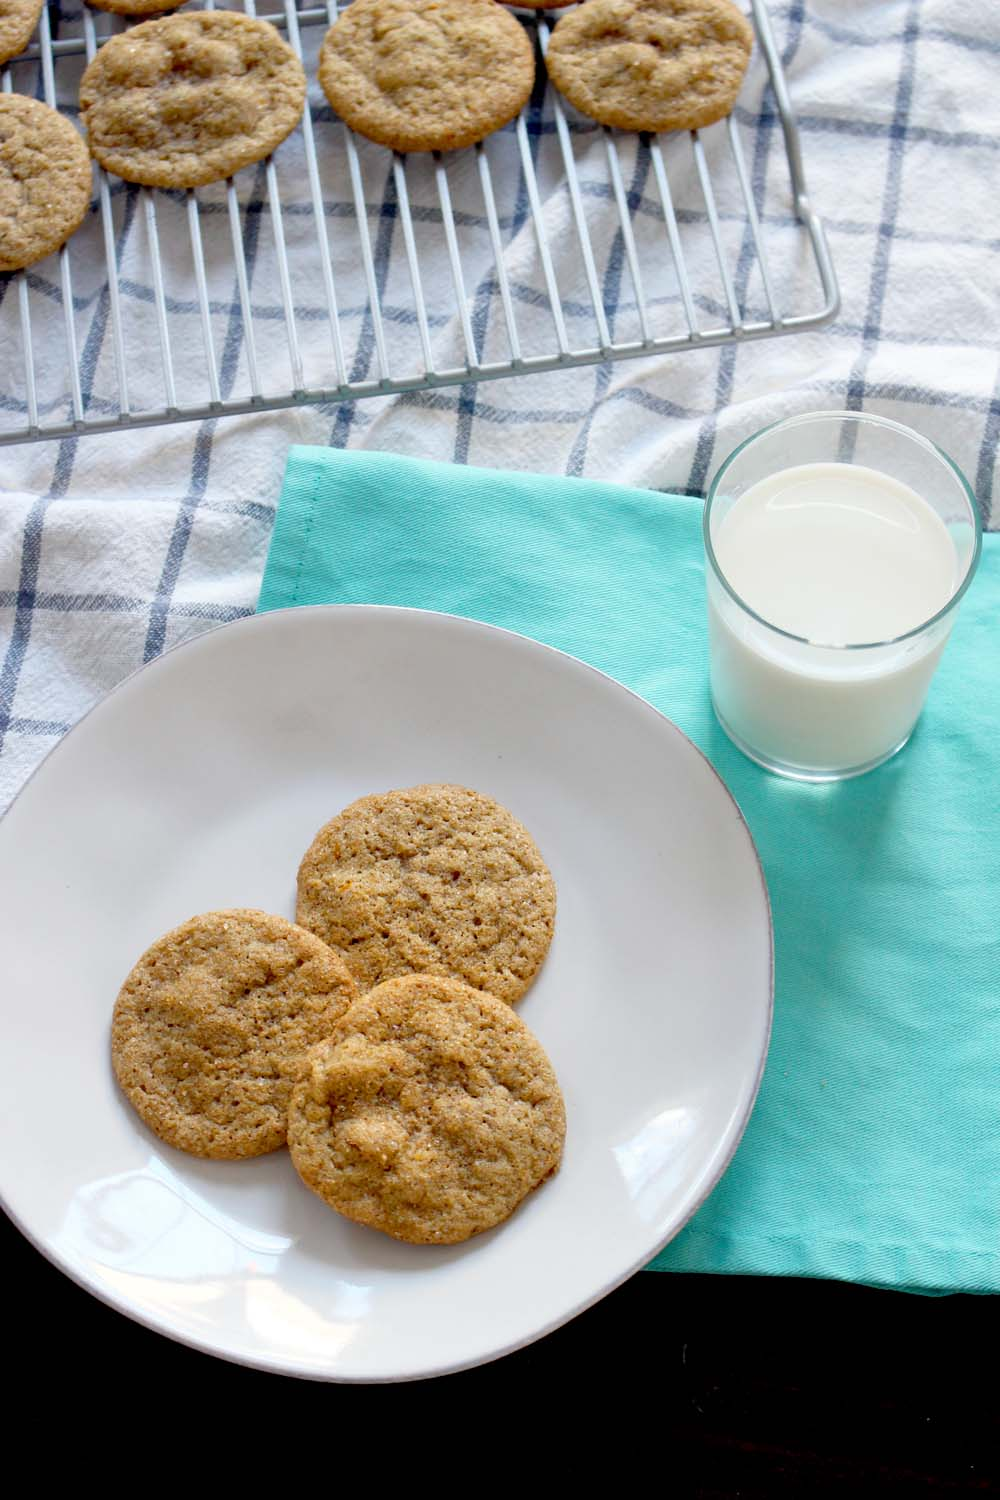 Bird's eye view of three cookies on a white plate, on a turquoise cloth with a glass of milk on the side, and a wire cooling rack holding several cookies in the background.